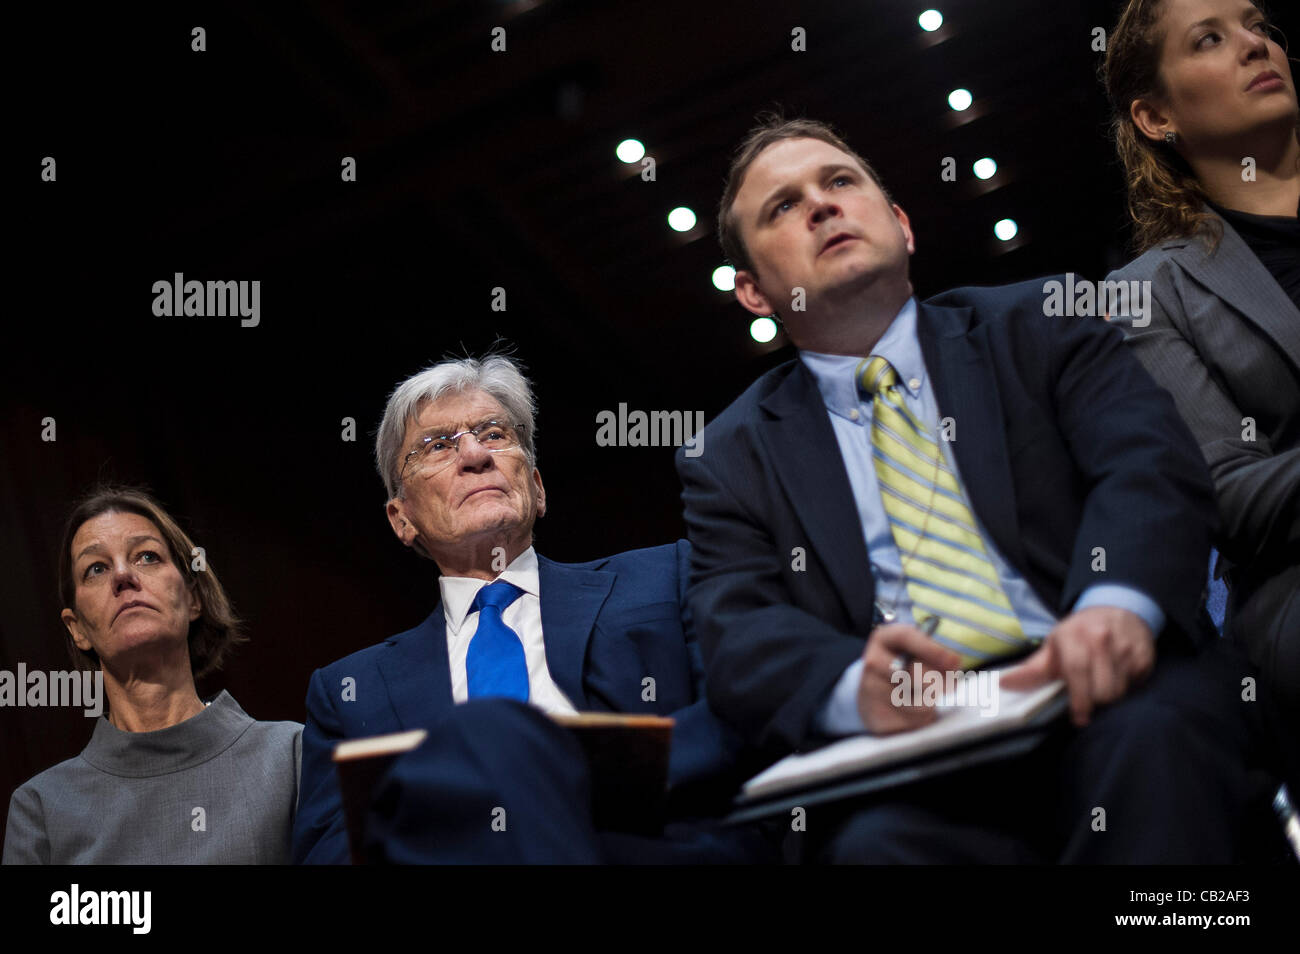 May 23, 2012 - Washington, District of Columbia, U.S. - Former Senator John Warner (R-VA) was in the audience as - Stock Image